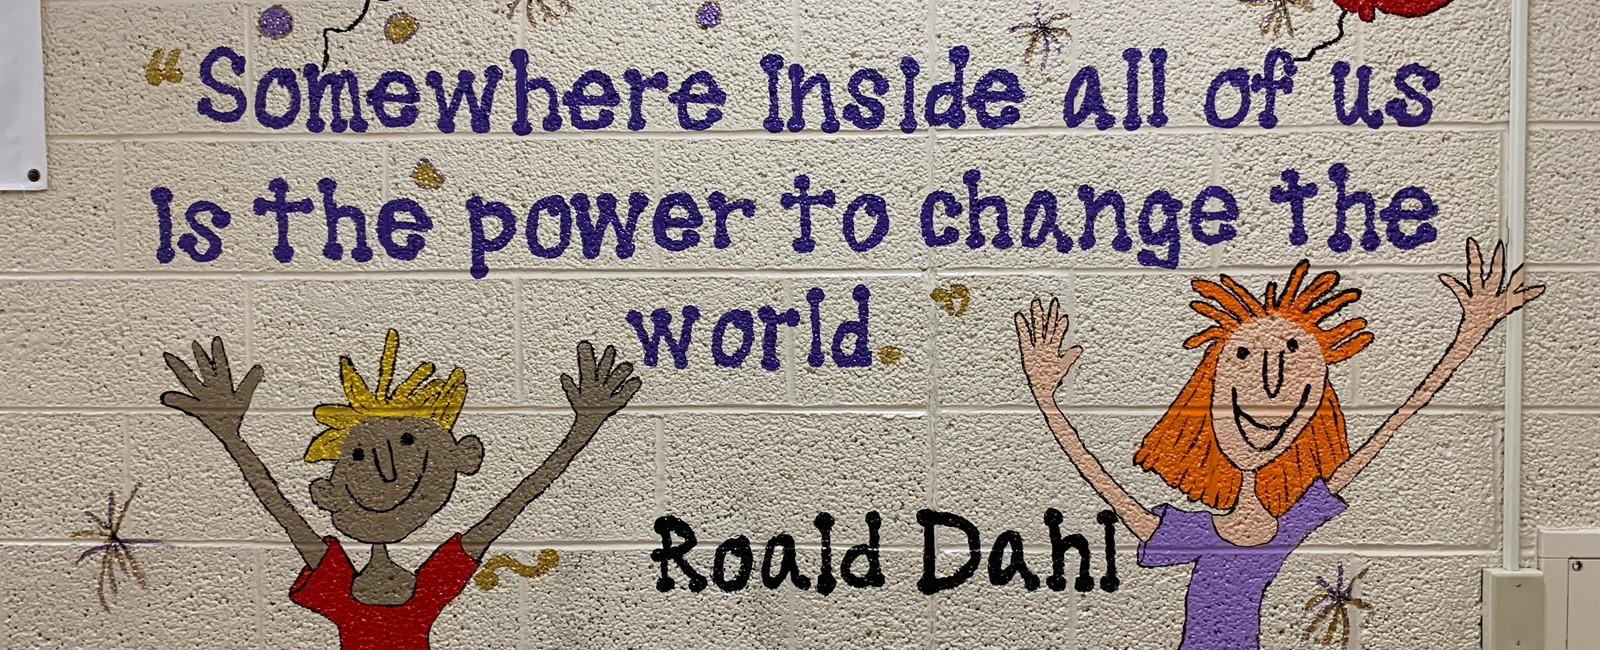 Positive messages can be seen throughout the walls inside both school buildings.